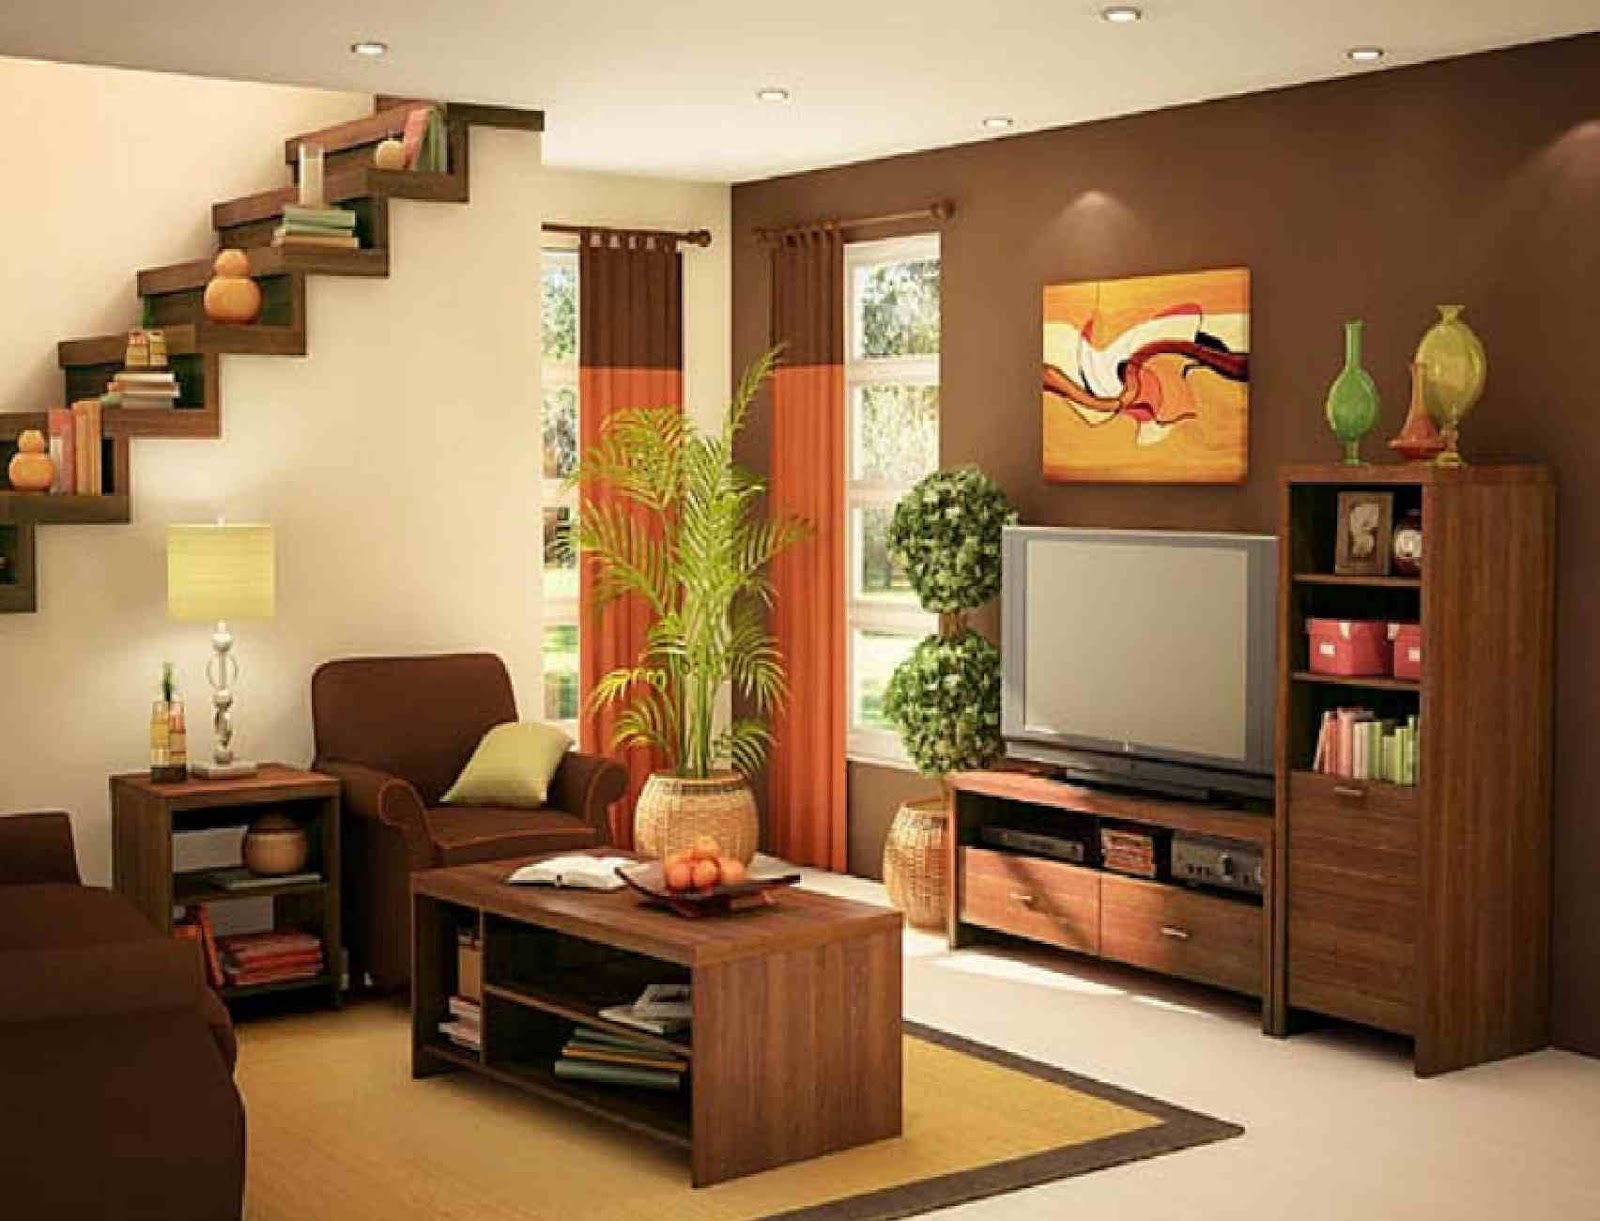 Simple living room designs dream house experience for Room 9 design